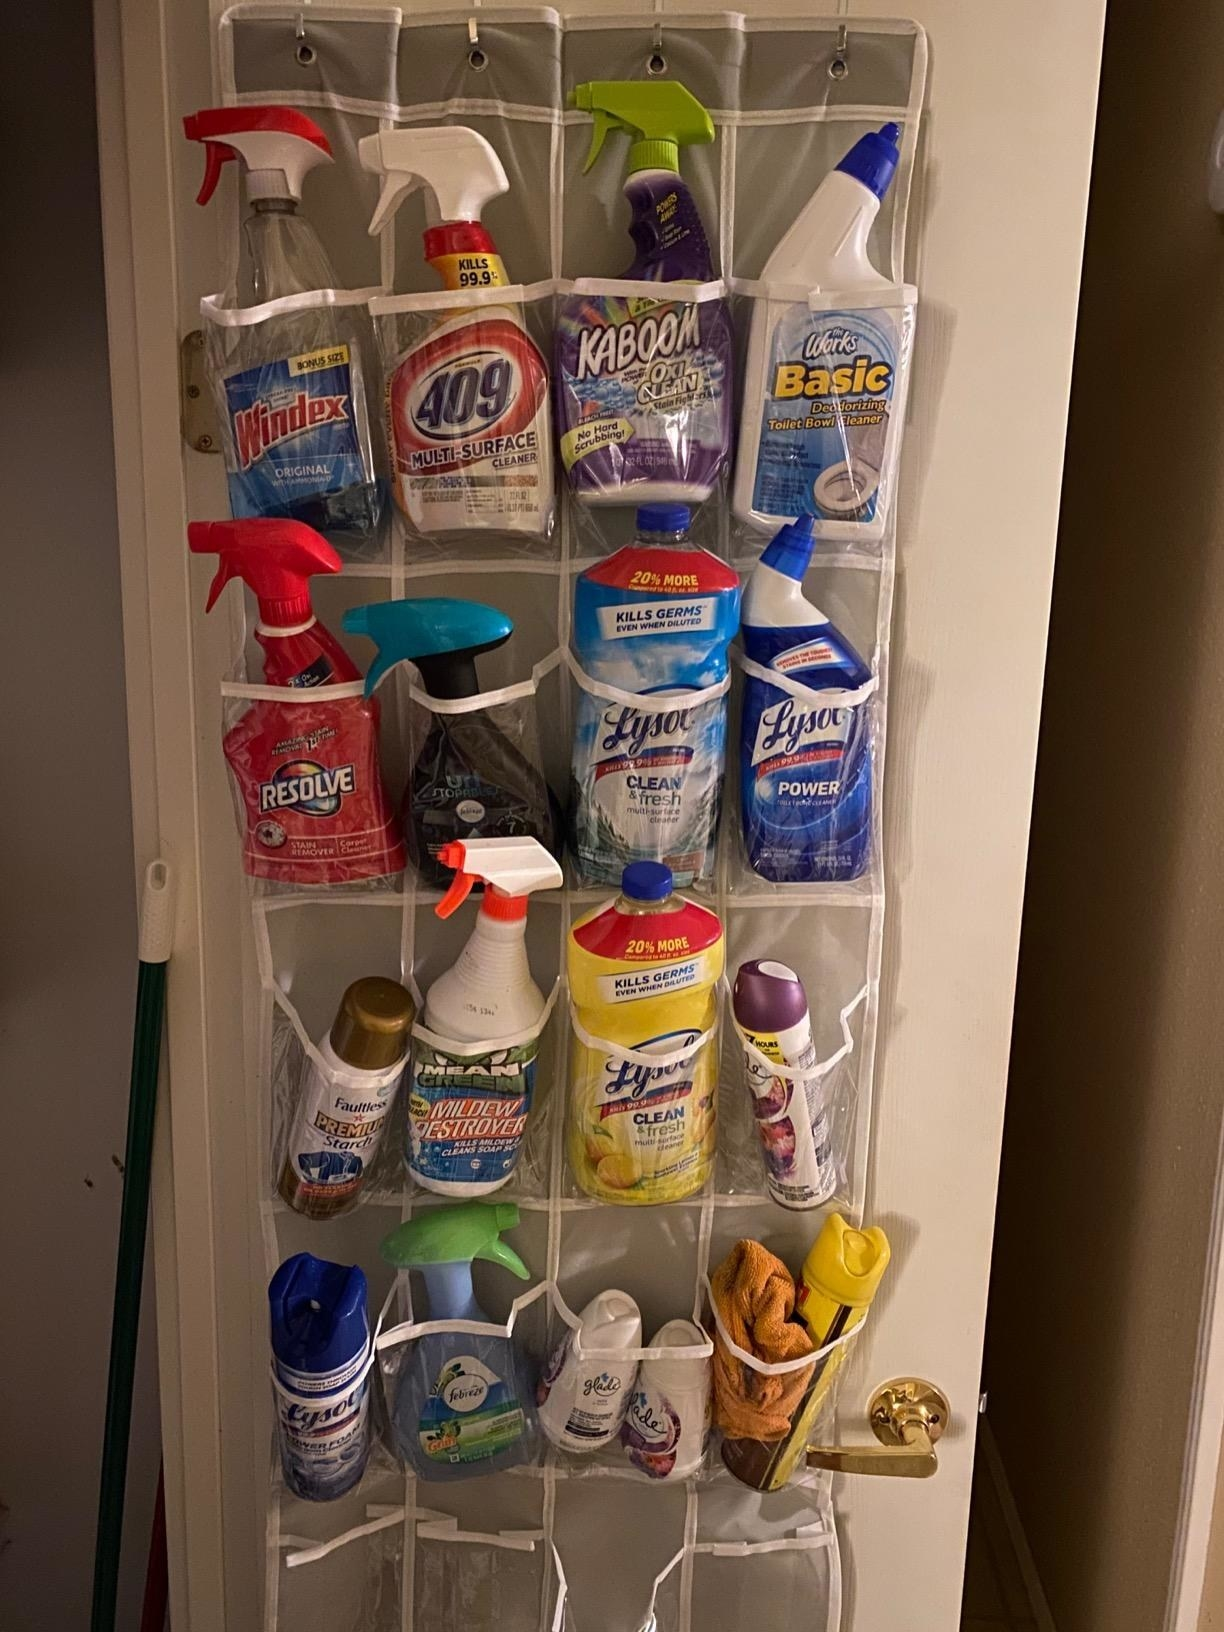 Reviewer photo of the organizer hanging from the back of a door, filled with cleaning supplies